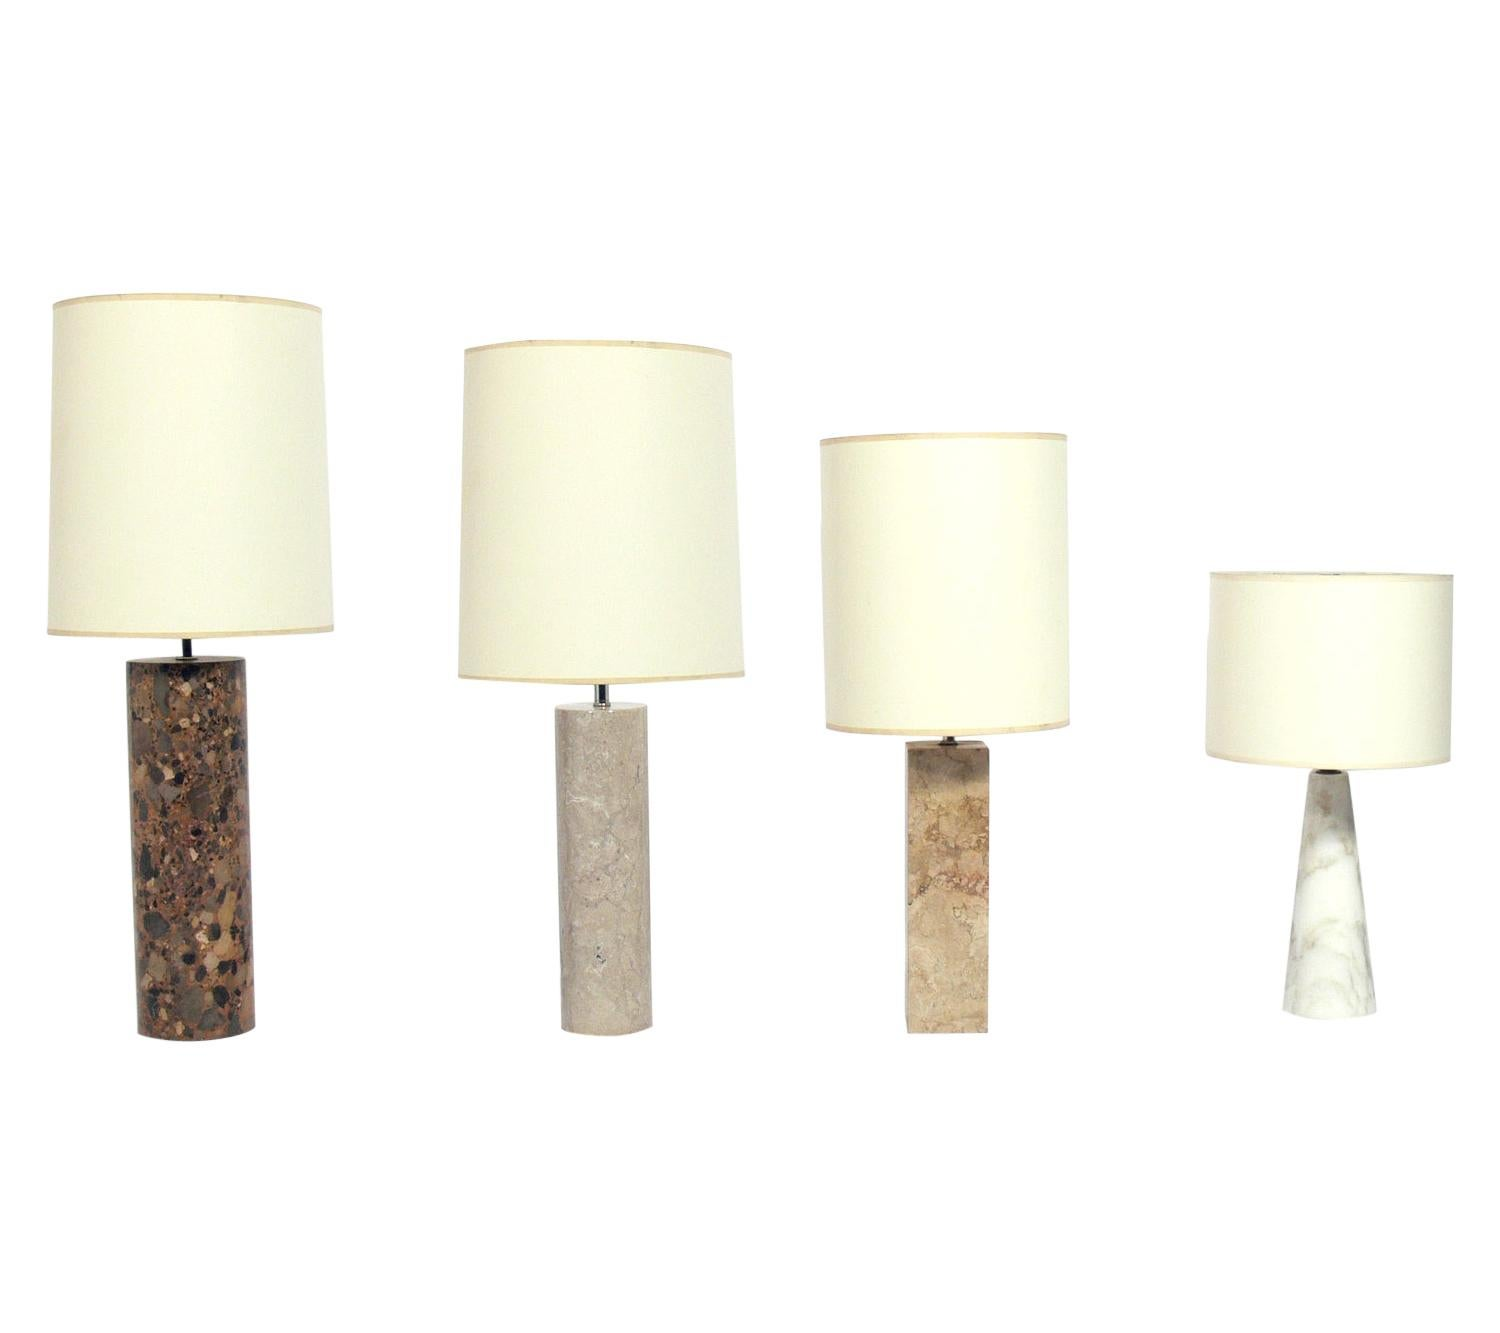 Selection of Midcentury Marble Lamps